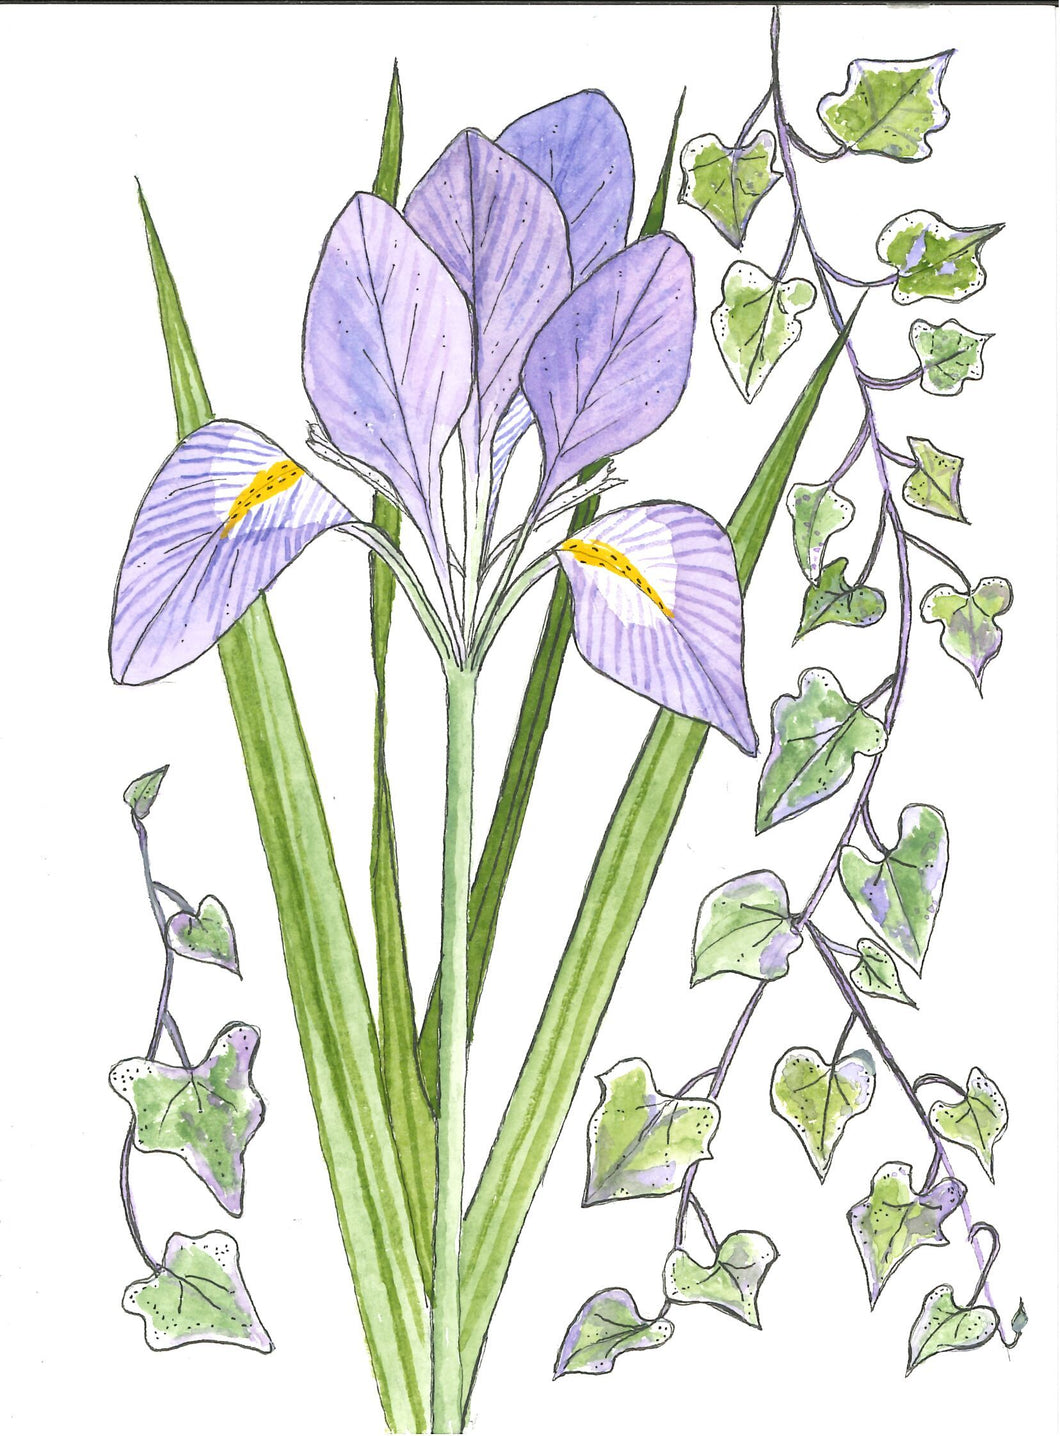 383, Cynthia Lear RWA, Winter Iris, Ink and watercolour 190x140mm